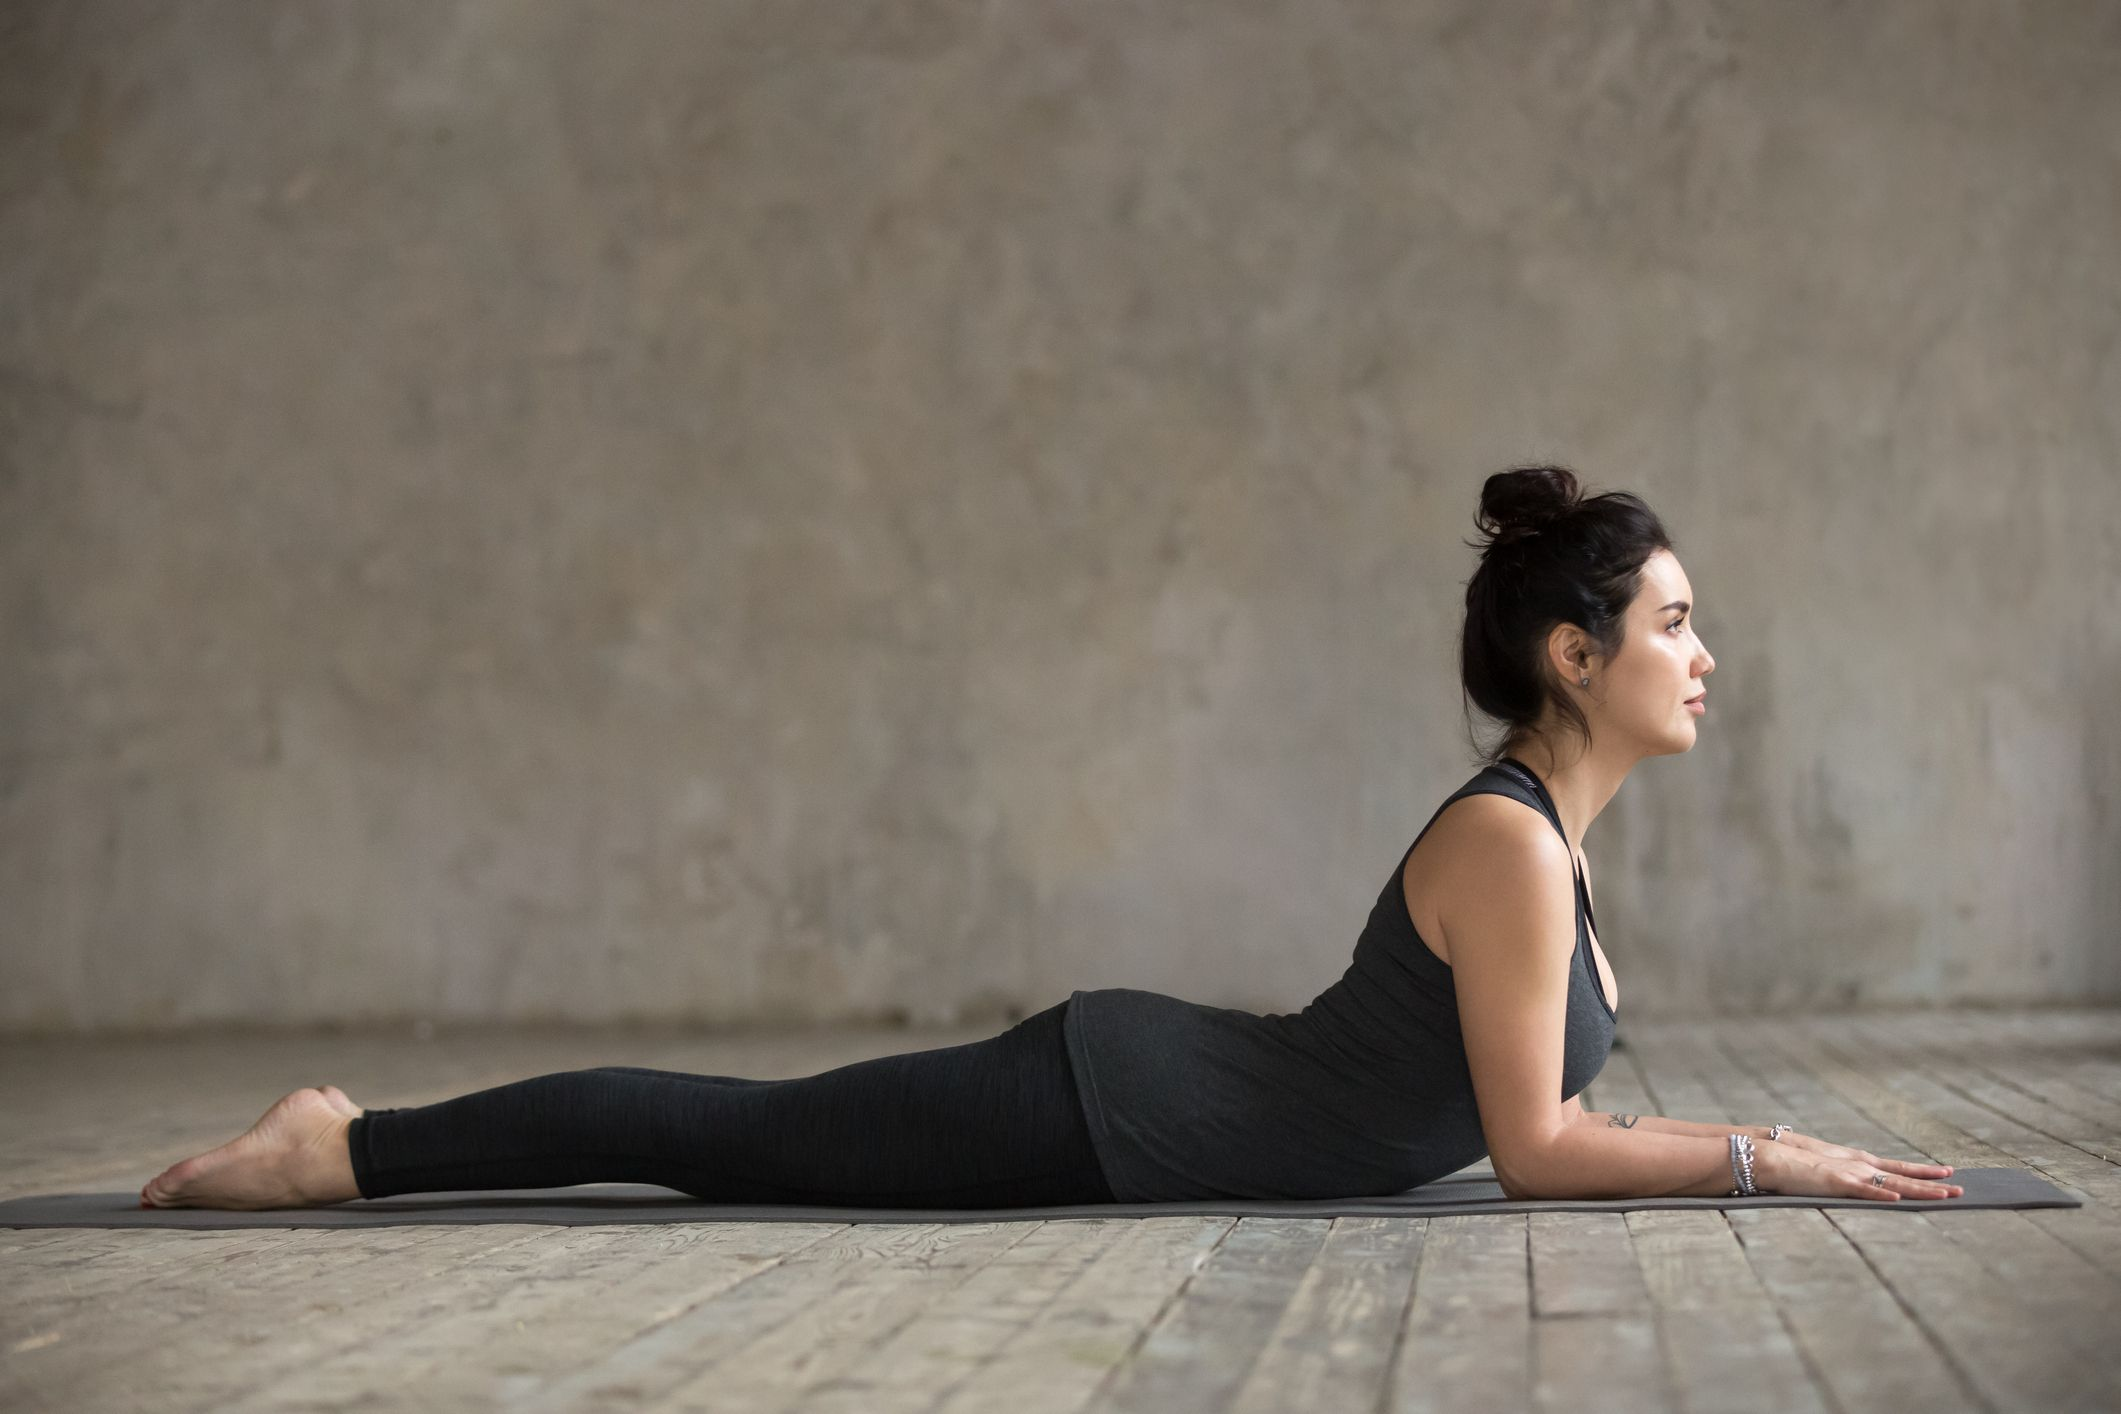 Strengthen Your Back and Core with the Prone Press Up Exercise